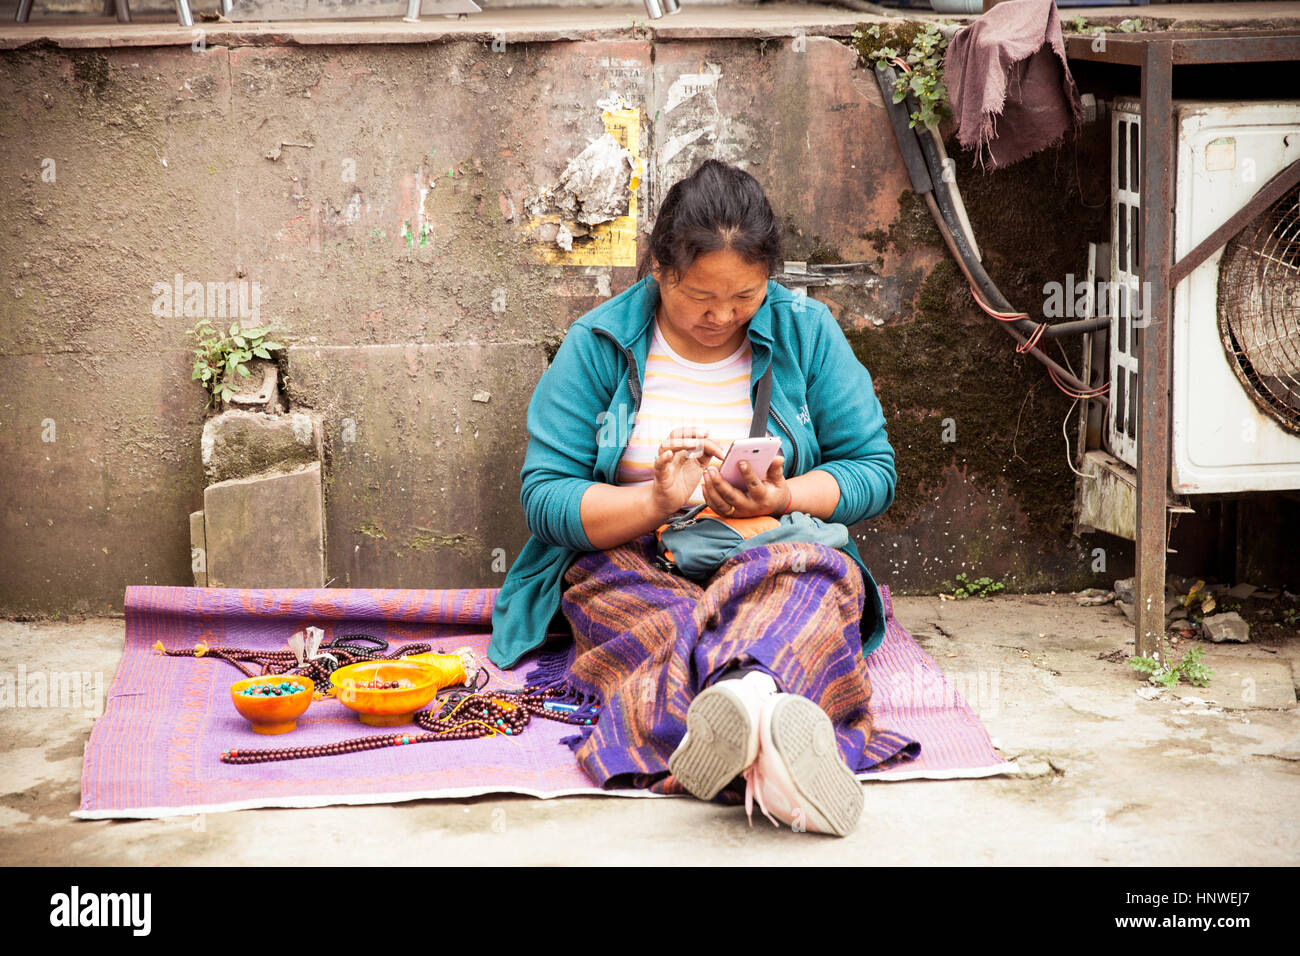 Dharamsala, India - 28 September, 2014: Tibetian woman with a smartphone at the street market, Dharamsala, India. - Stock Image